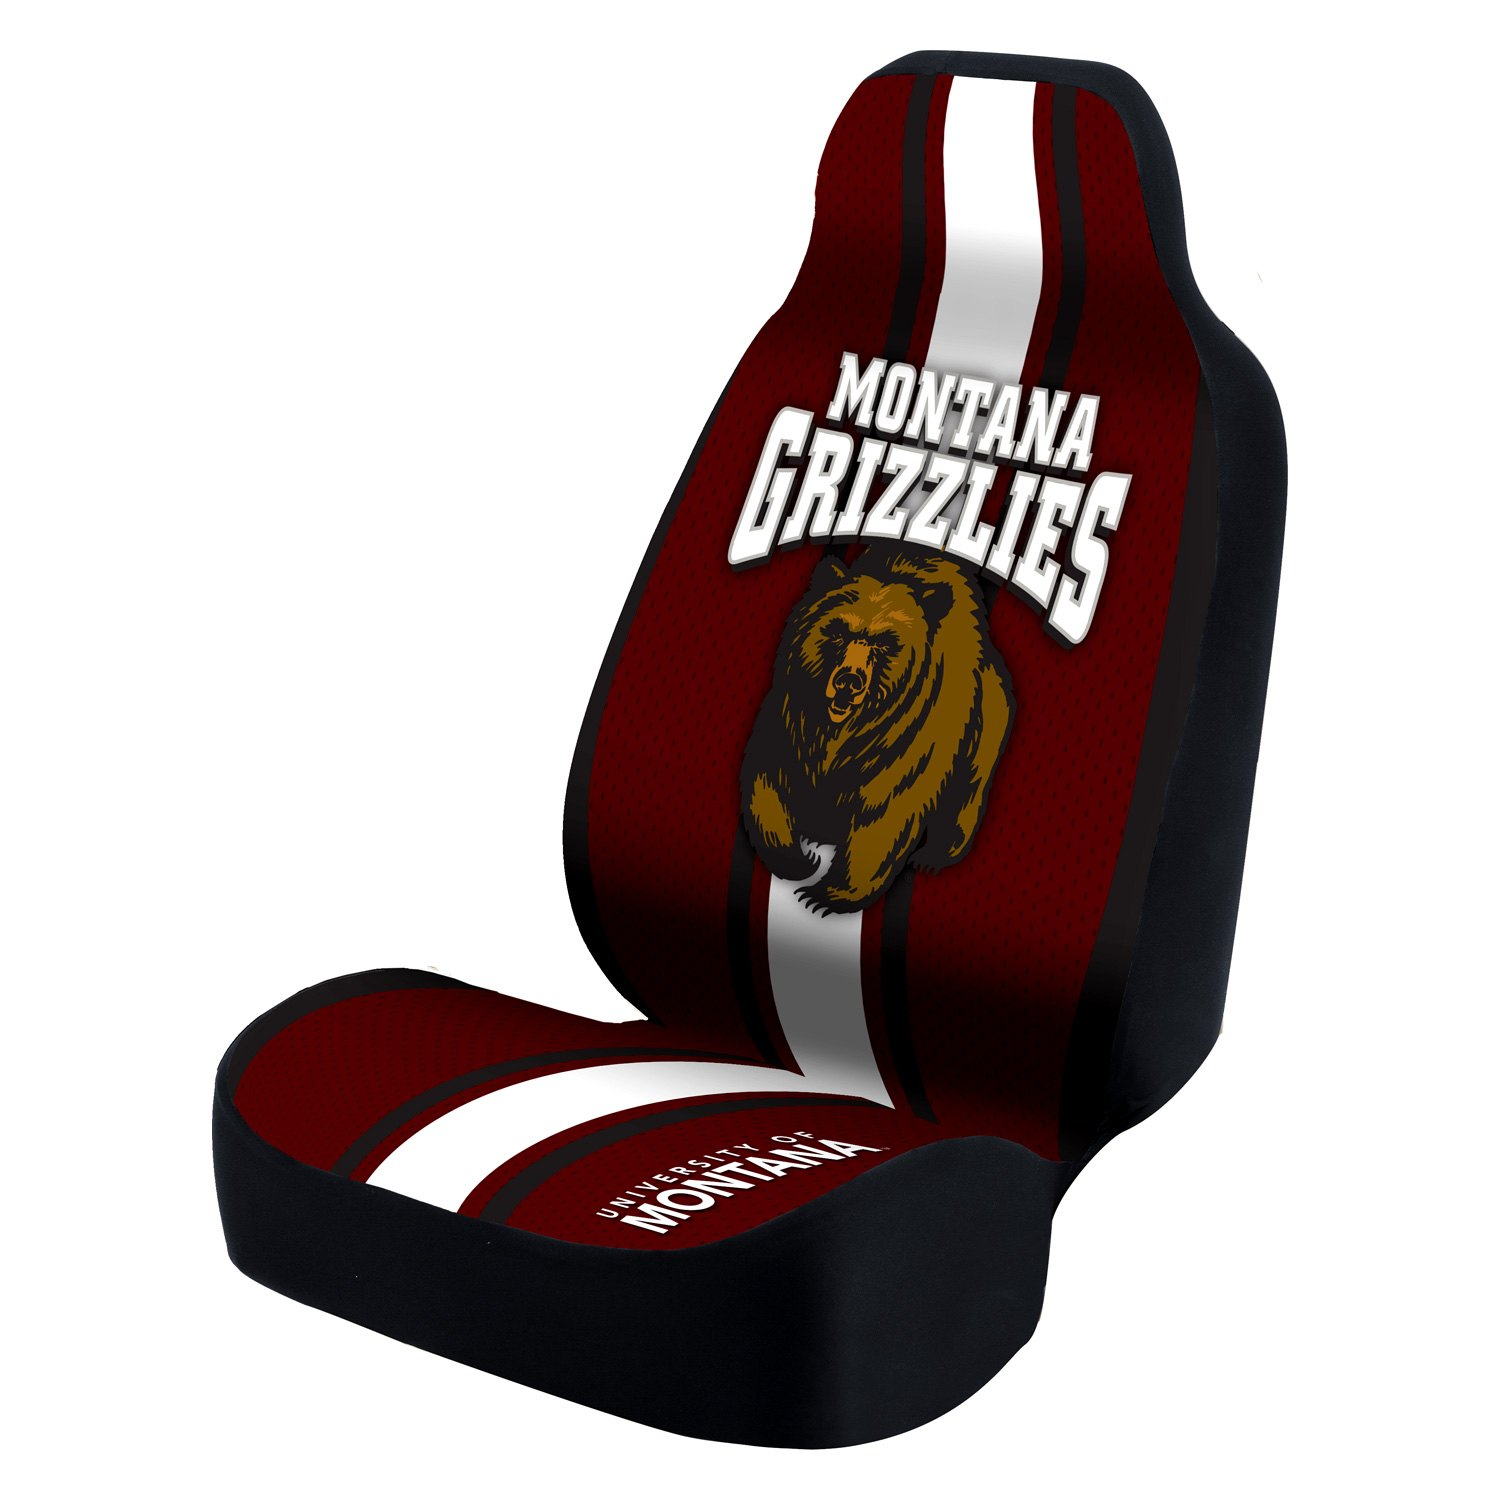 Coverking® USCSELA043 - Collegiate Seat Cover (University of Montana ...